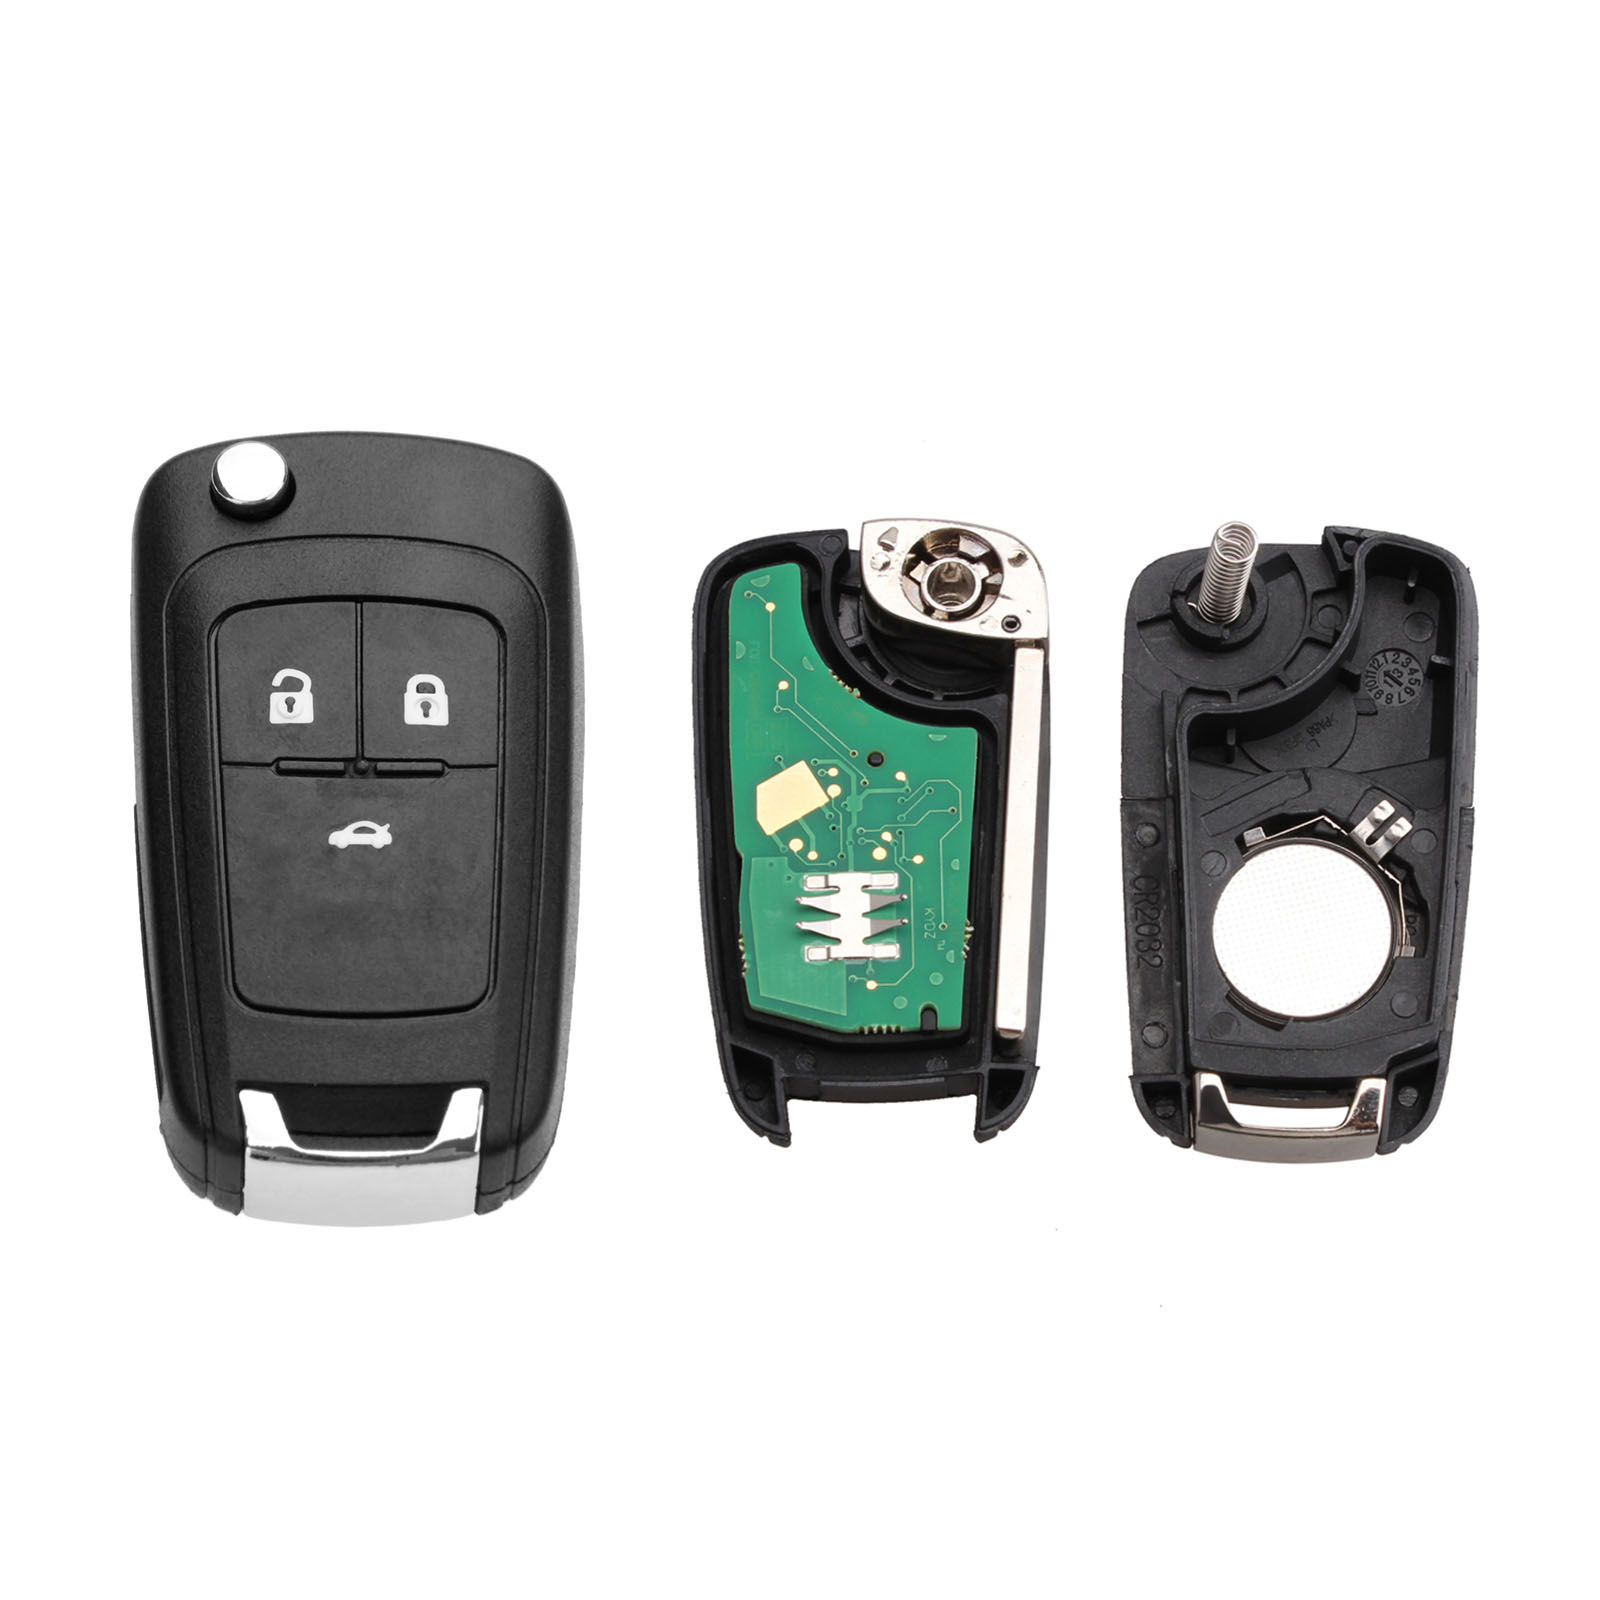 3 Buttons 433 MHz Car <font><b>Remote</b></font> <font><b>Key</b></font> For <font><b>Opel</b></font> Vauxhall Astra J, Corsa E, Insignia, Zafira C with ID46 / PCF7941 Chip HU100 Blade image